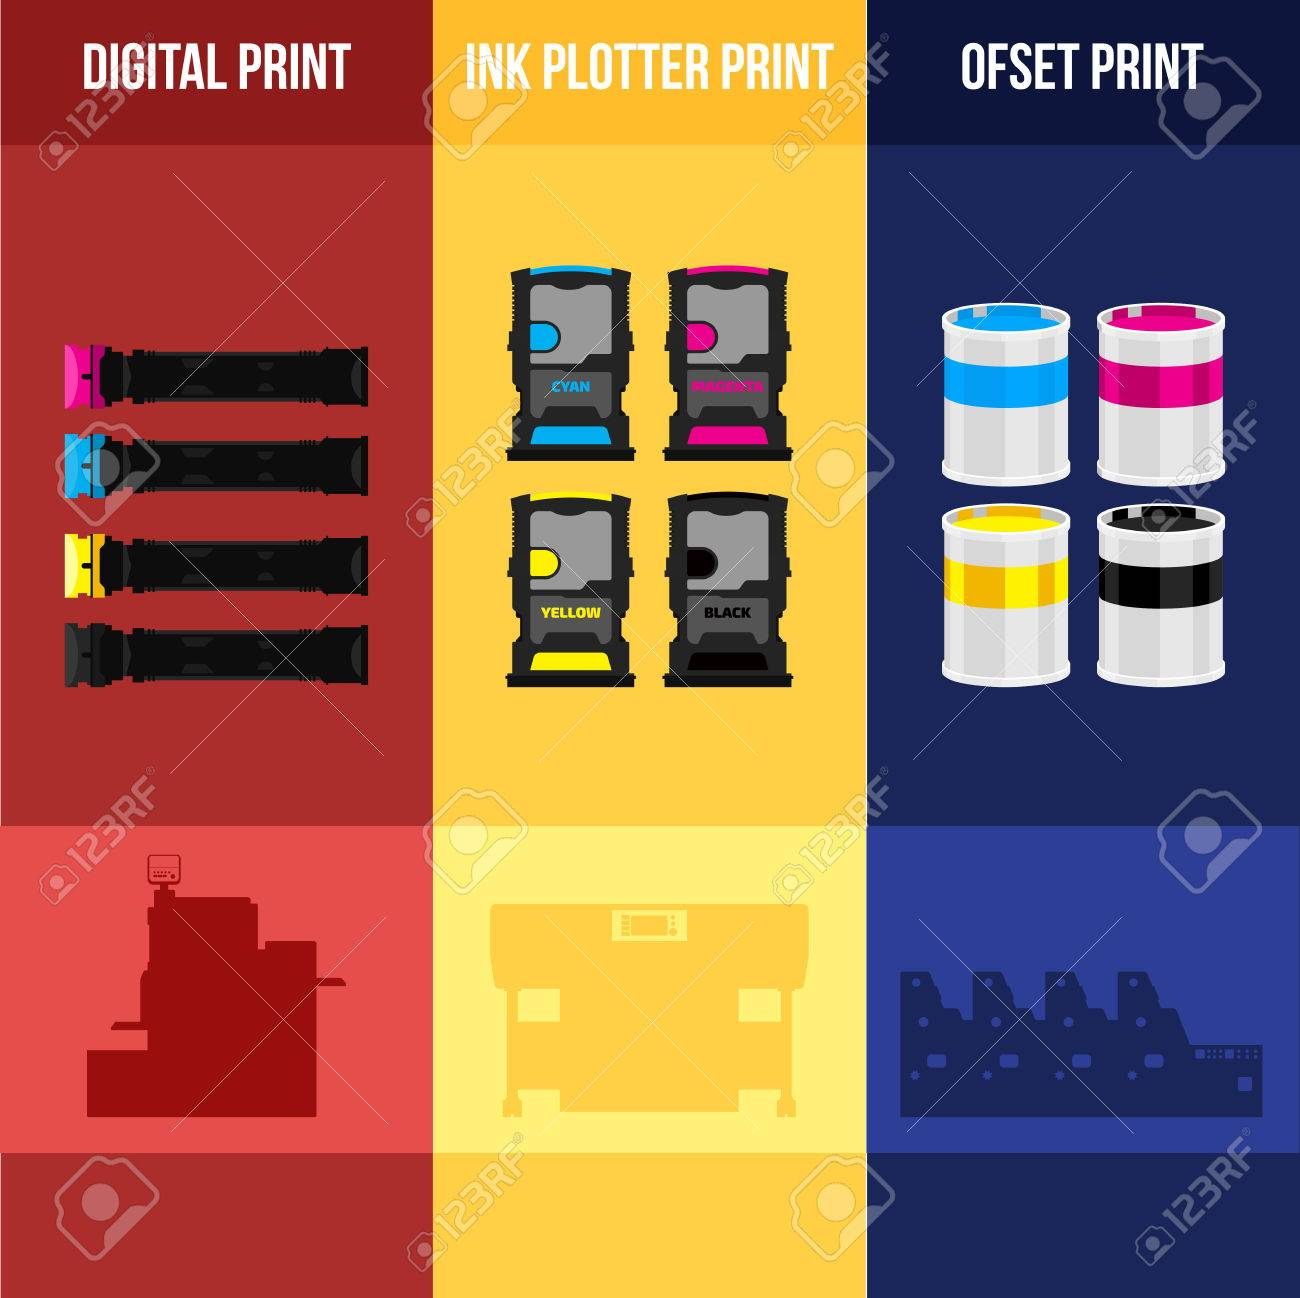 Printing Equipment Color Printer Cyan Magenta Yellow Black Pant